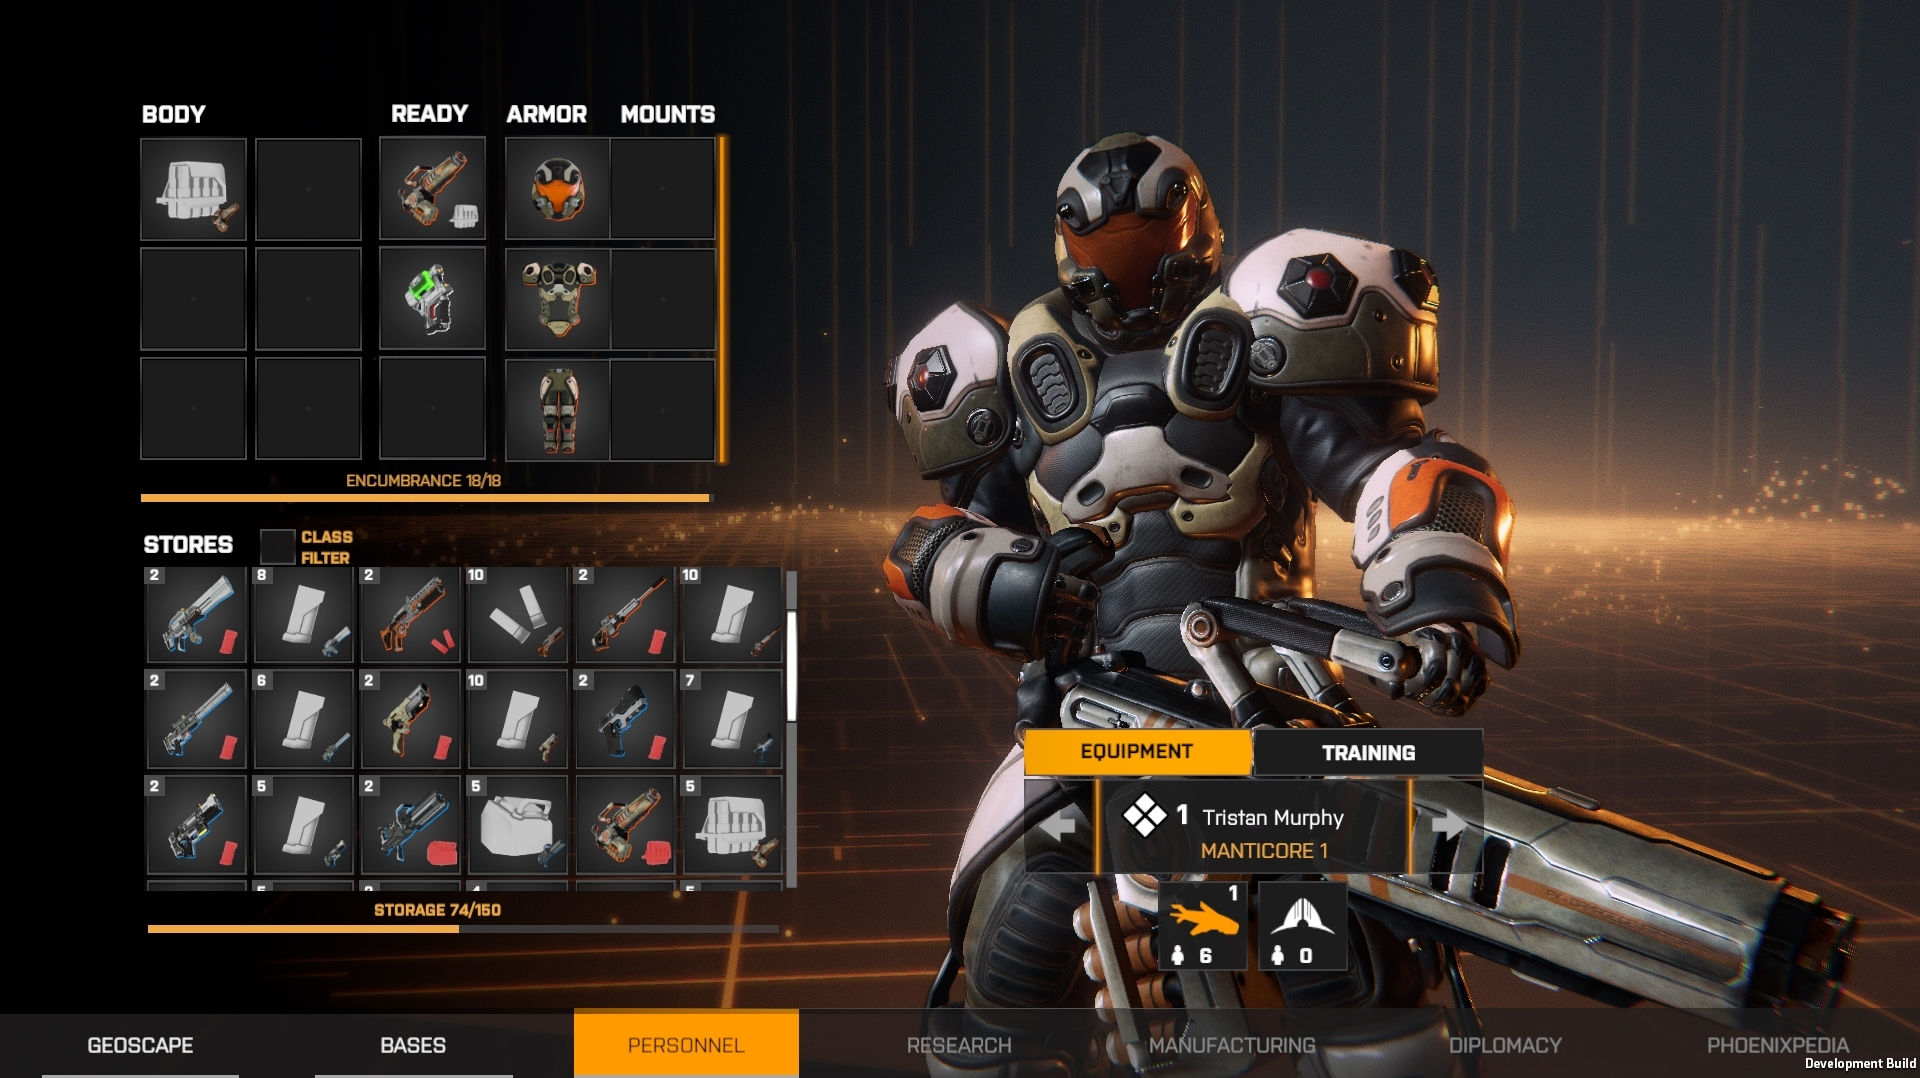 Inventory Management and Equip screen